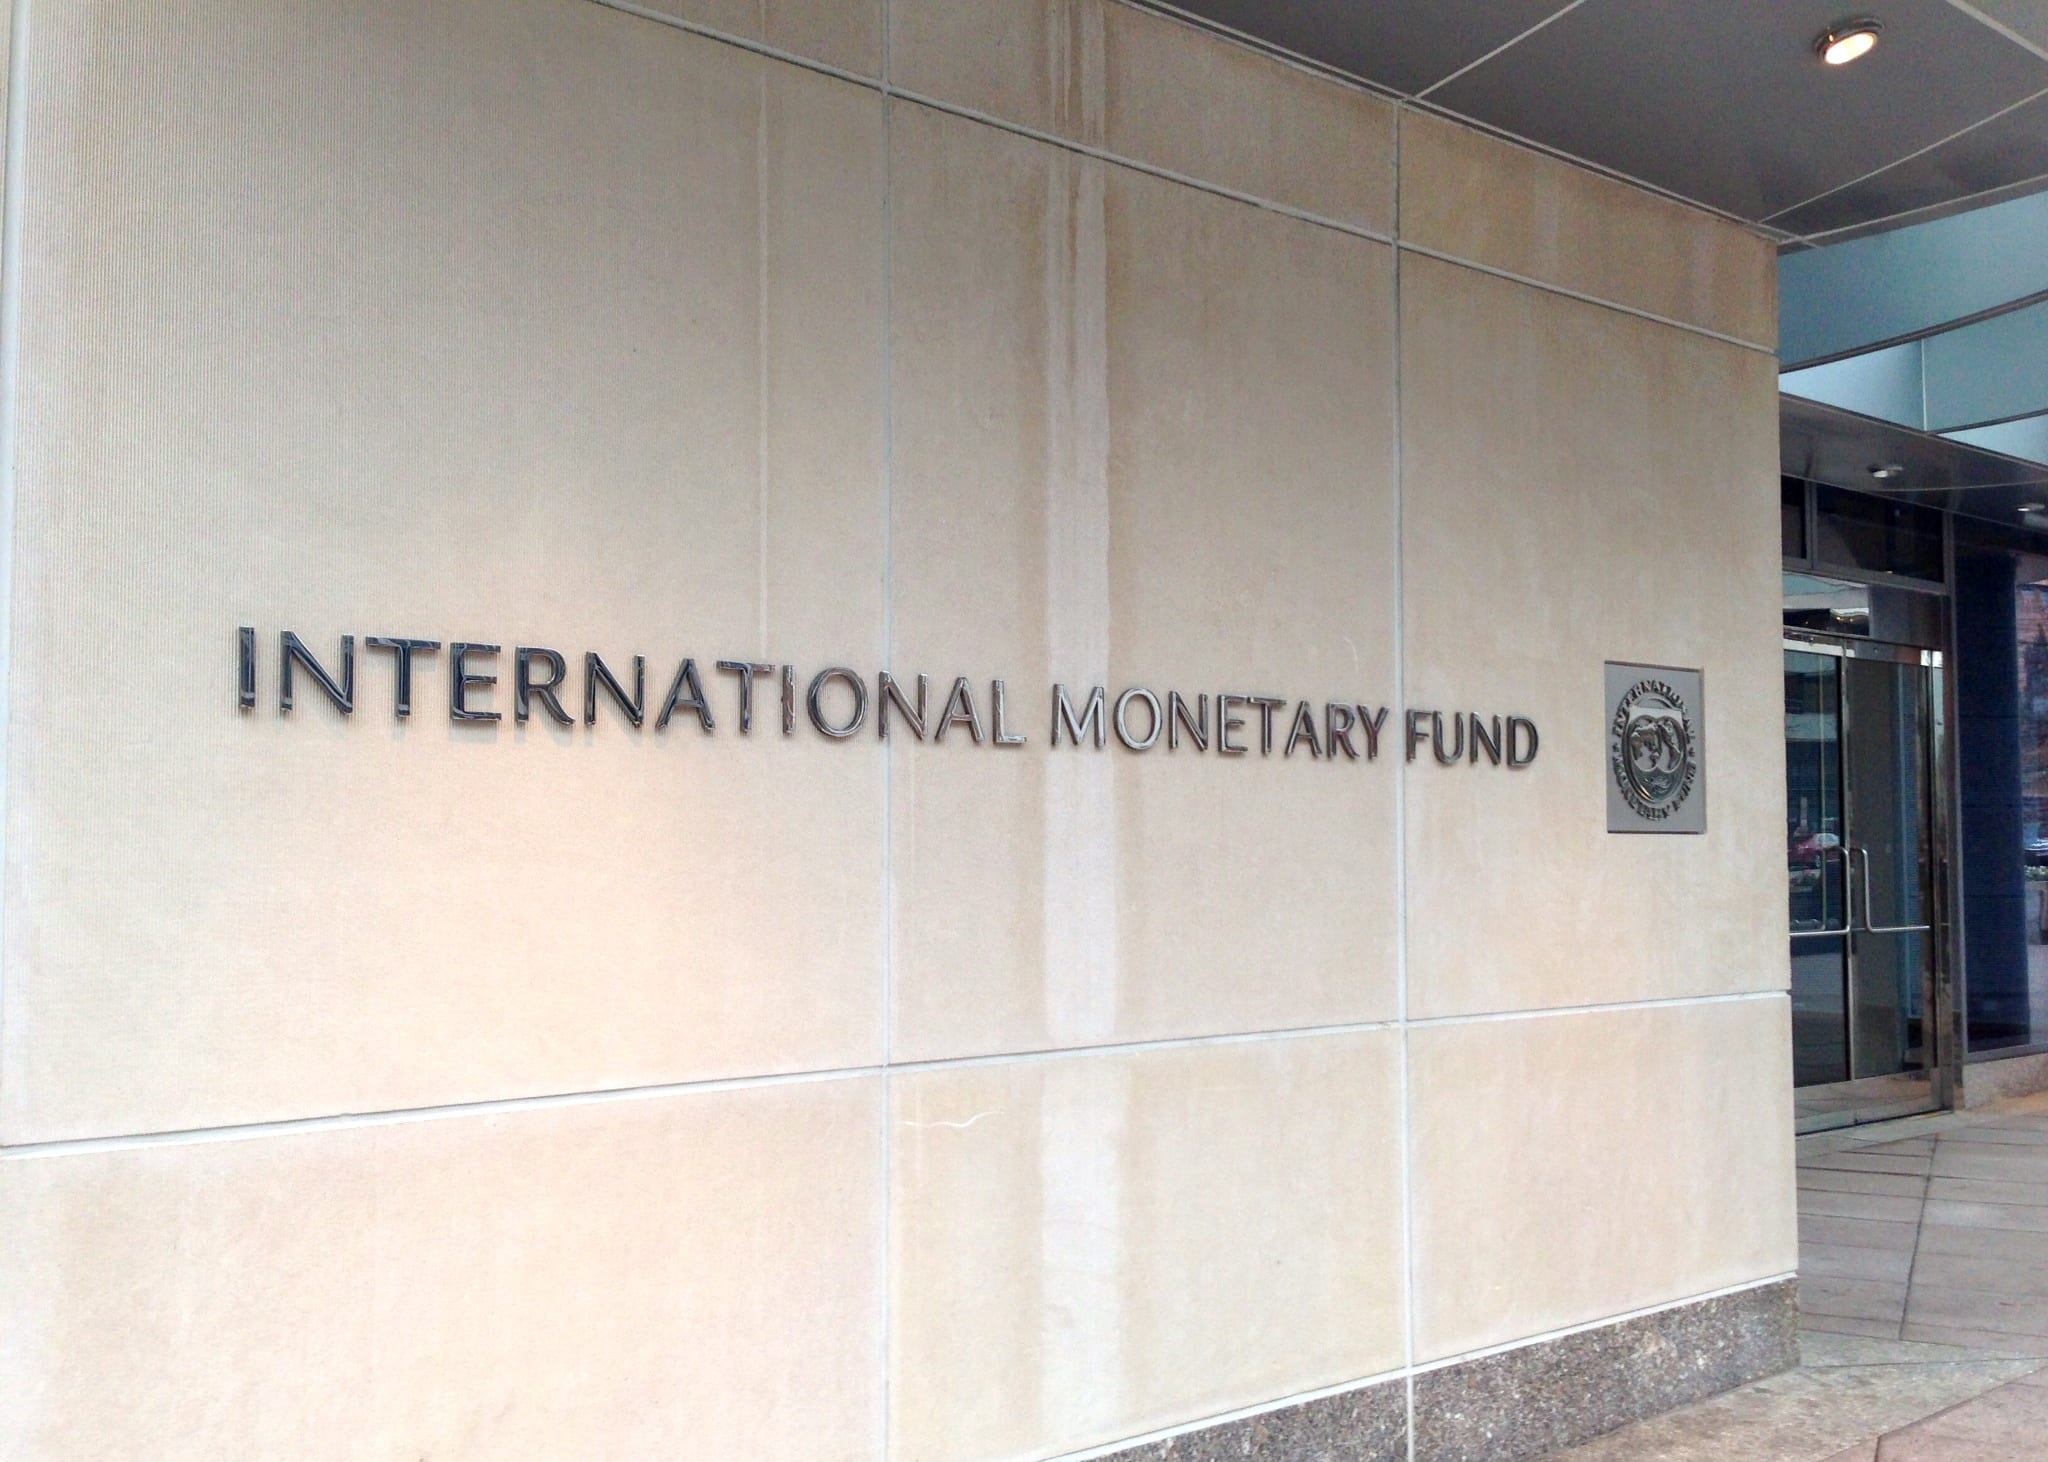 International: The International Monetary Fund offers analysis of UBI as part of its 'Fiscal Monitor: Tackling Inequality' report